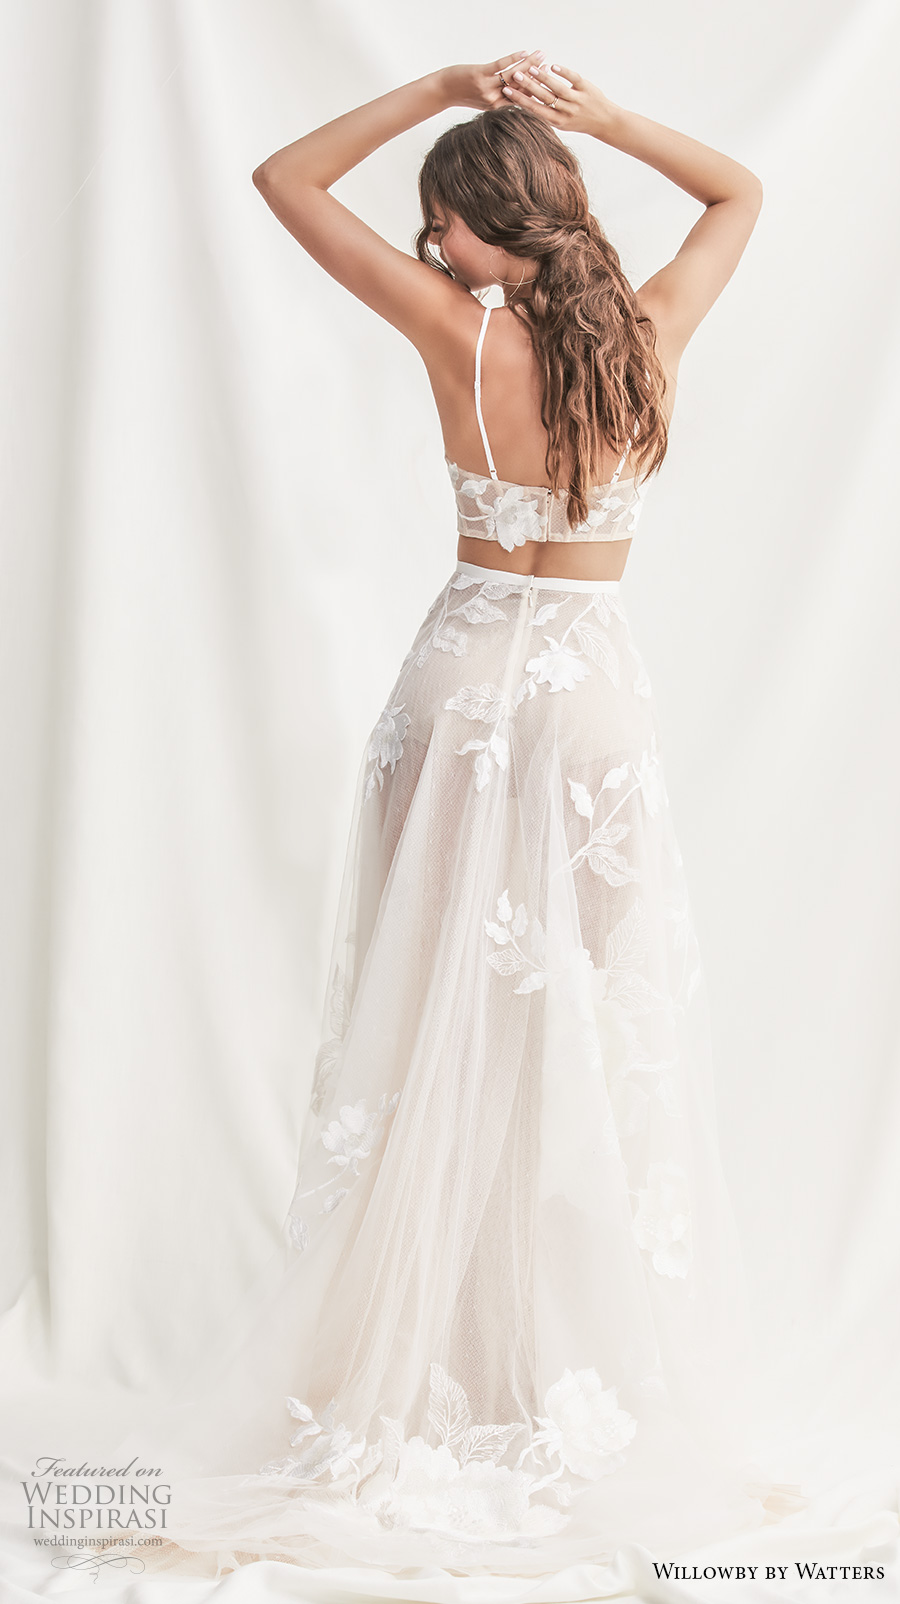 willowby by watters spring 2019 bridal thin strap straight across full embellishment crop top 2 piece romantic soft a  line wedding dress short train (7) bv